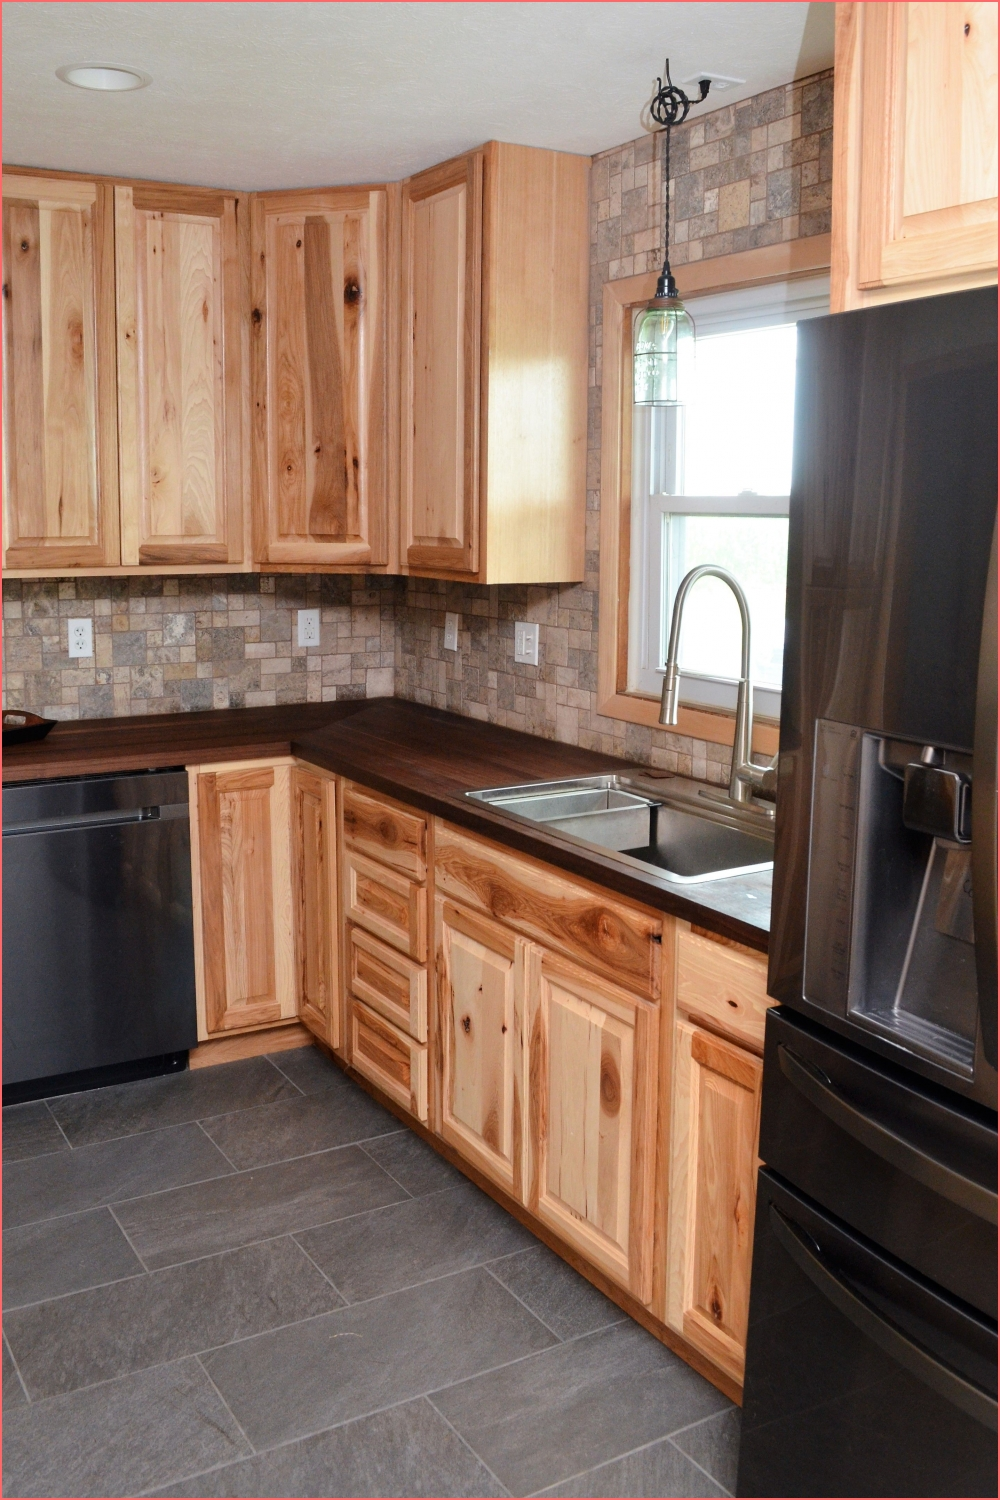 Haas Signature Collection Wood Species Rustic Hickory on rustic hickory kitchen cabinets on rustic hickory kitchen cabinets post on 2020-11-24 16:13:23